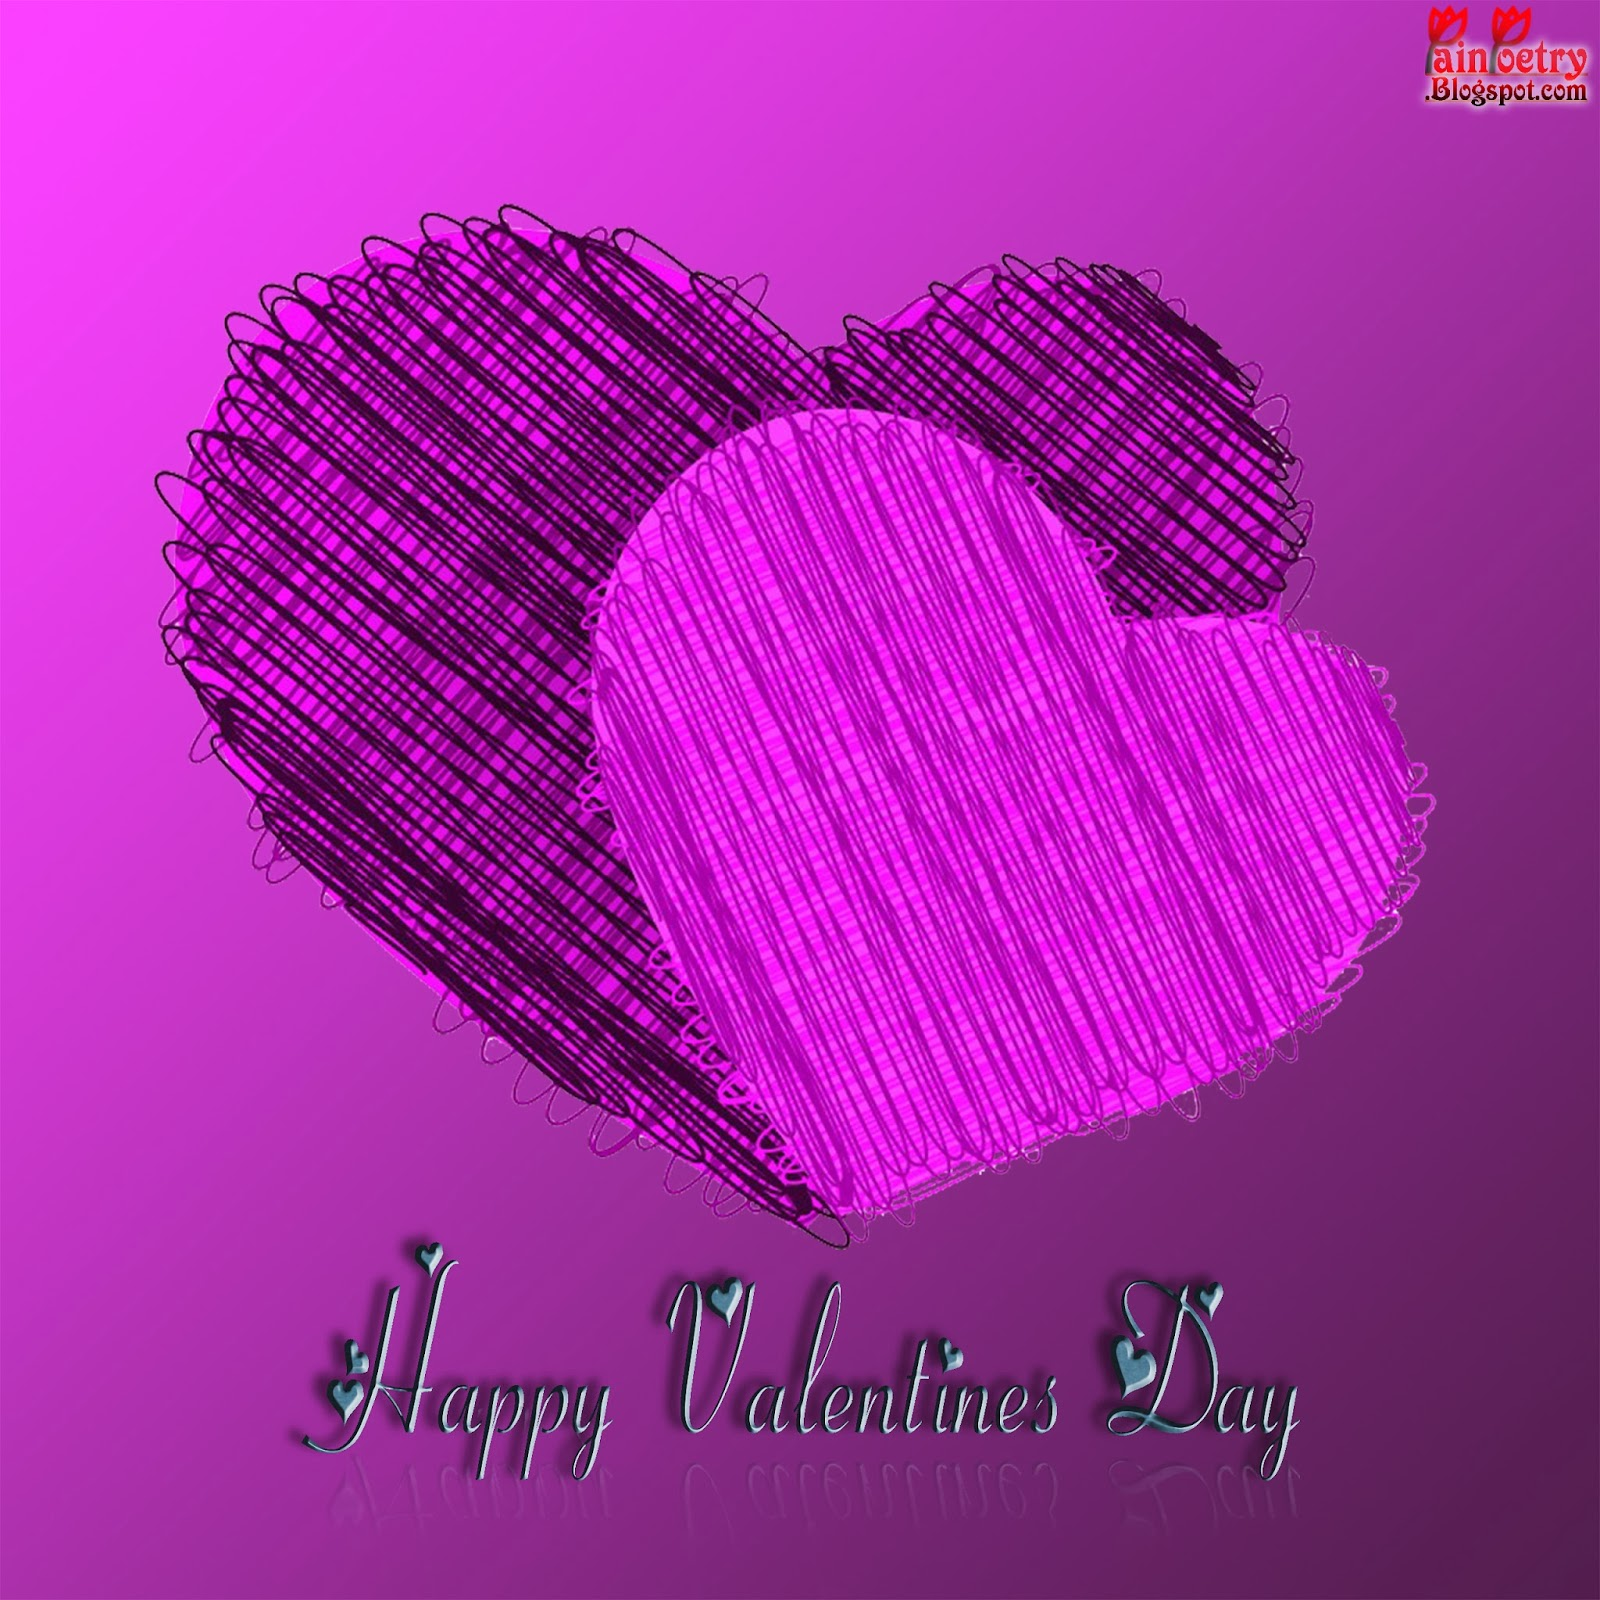 Happy-Valentines-Day-Two-Heart-In-Love-Image-HD